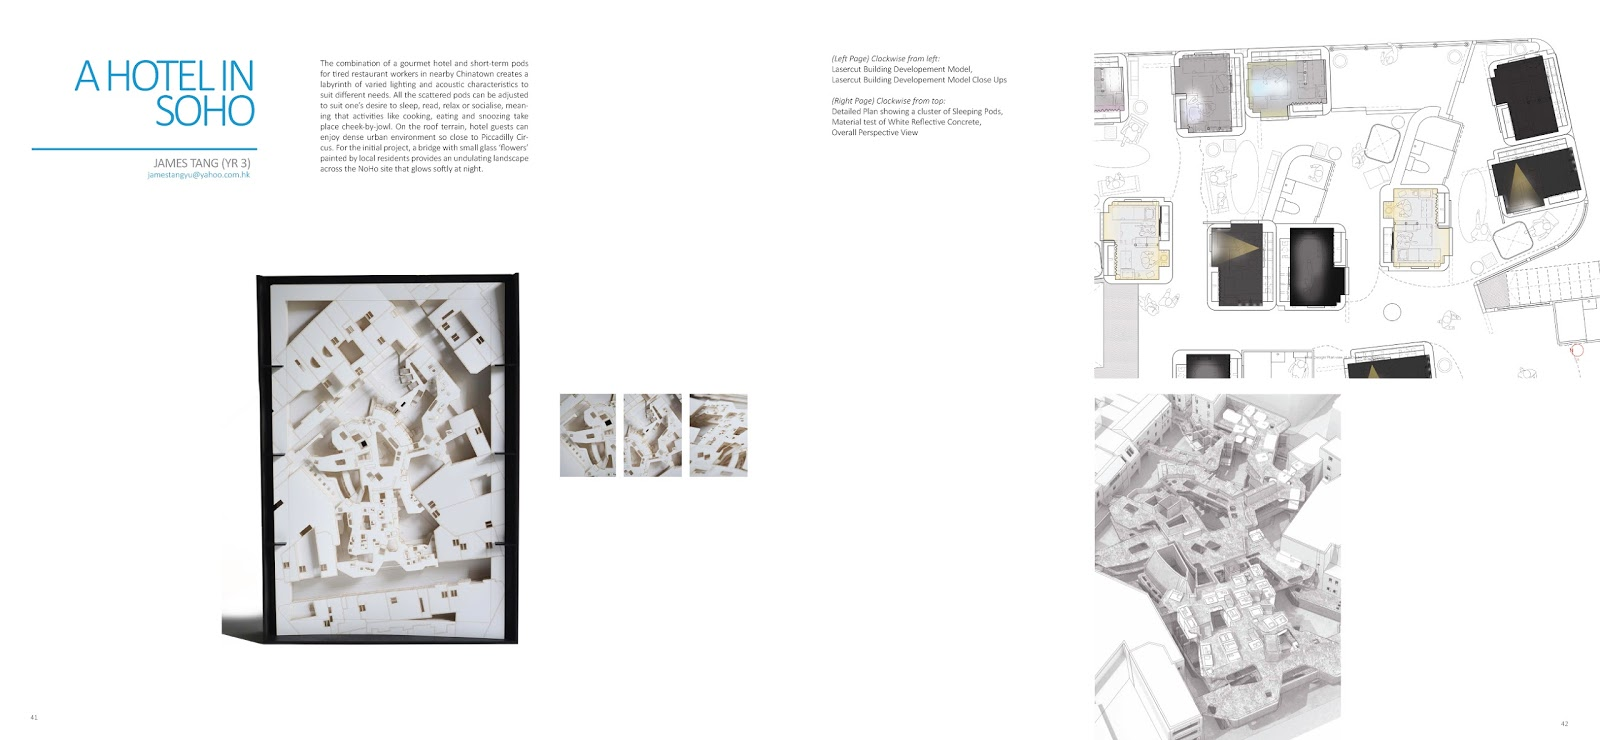 bartlett school of architecture thesis work Stefano passeri holds a master of architecture with from the bartlett school of architecture  the 2013 sci-arc gehry prize for best thesis.